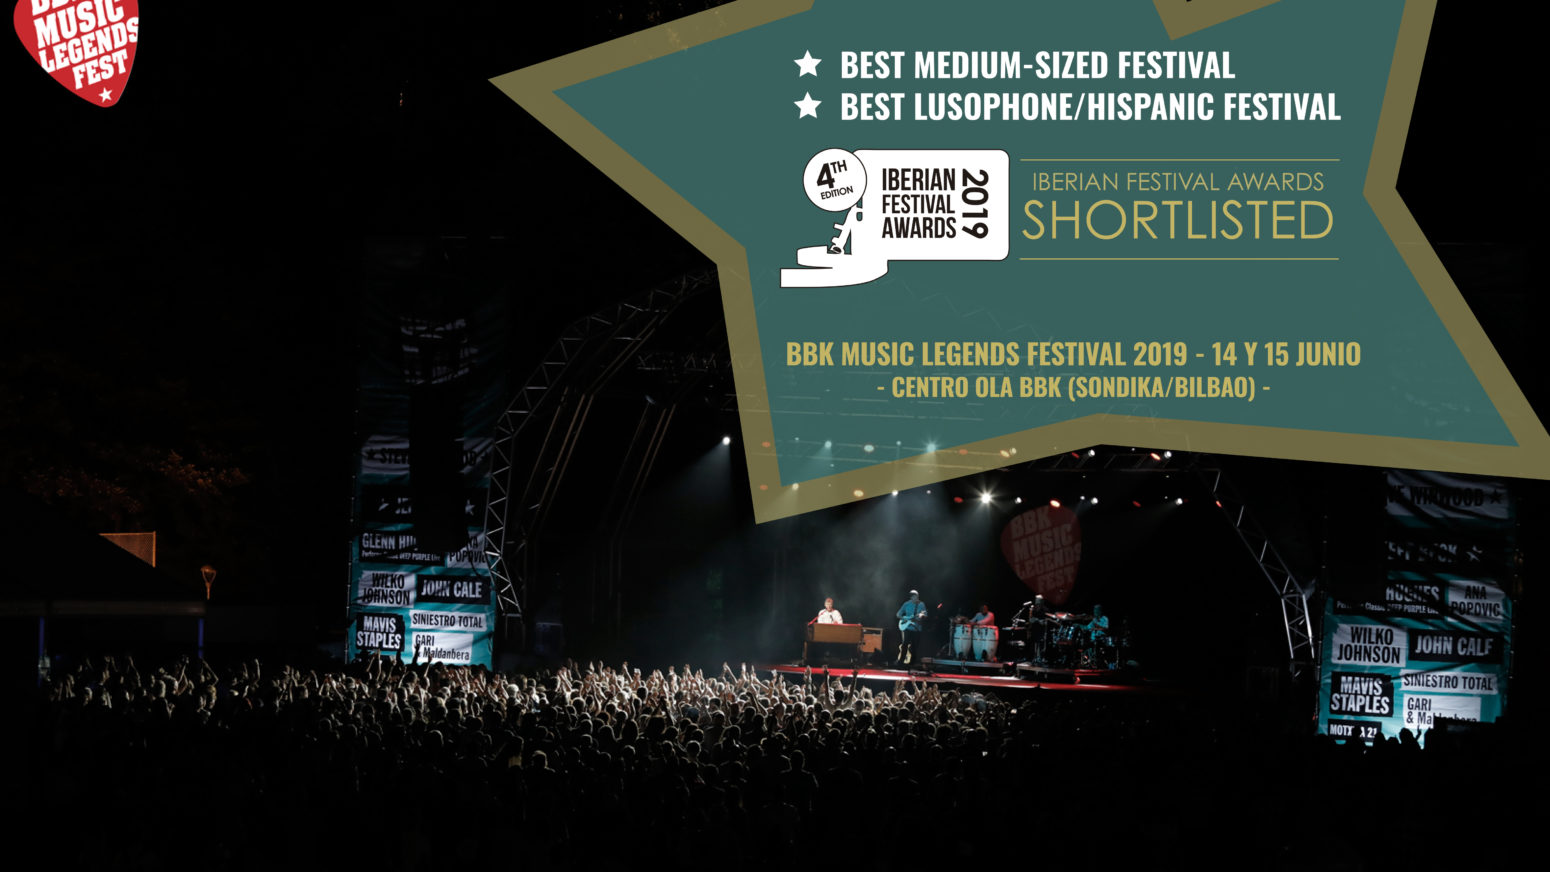 BBK MUSIC LEGENDS FESTIVAL FINALISTA EN IBERIAN FESTIVAL AWARDS 2019